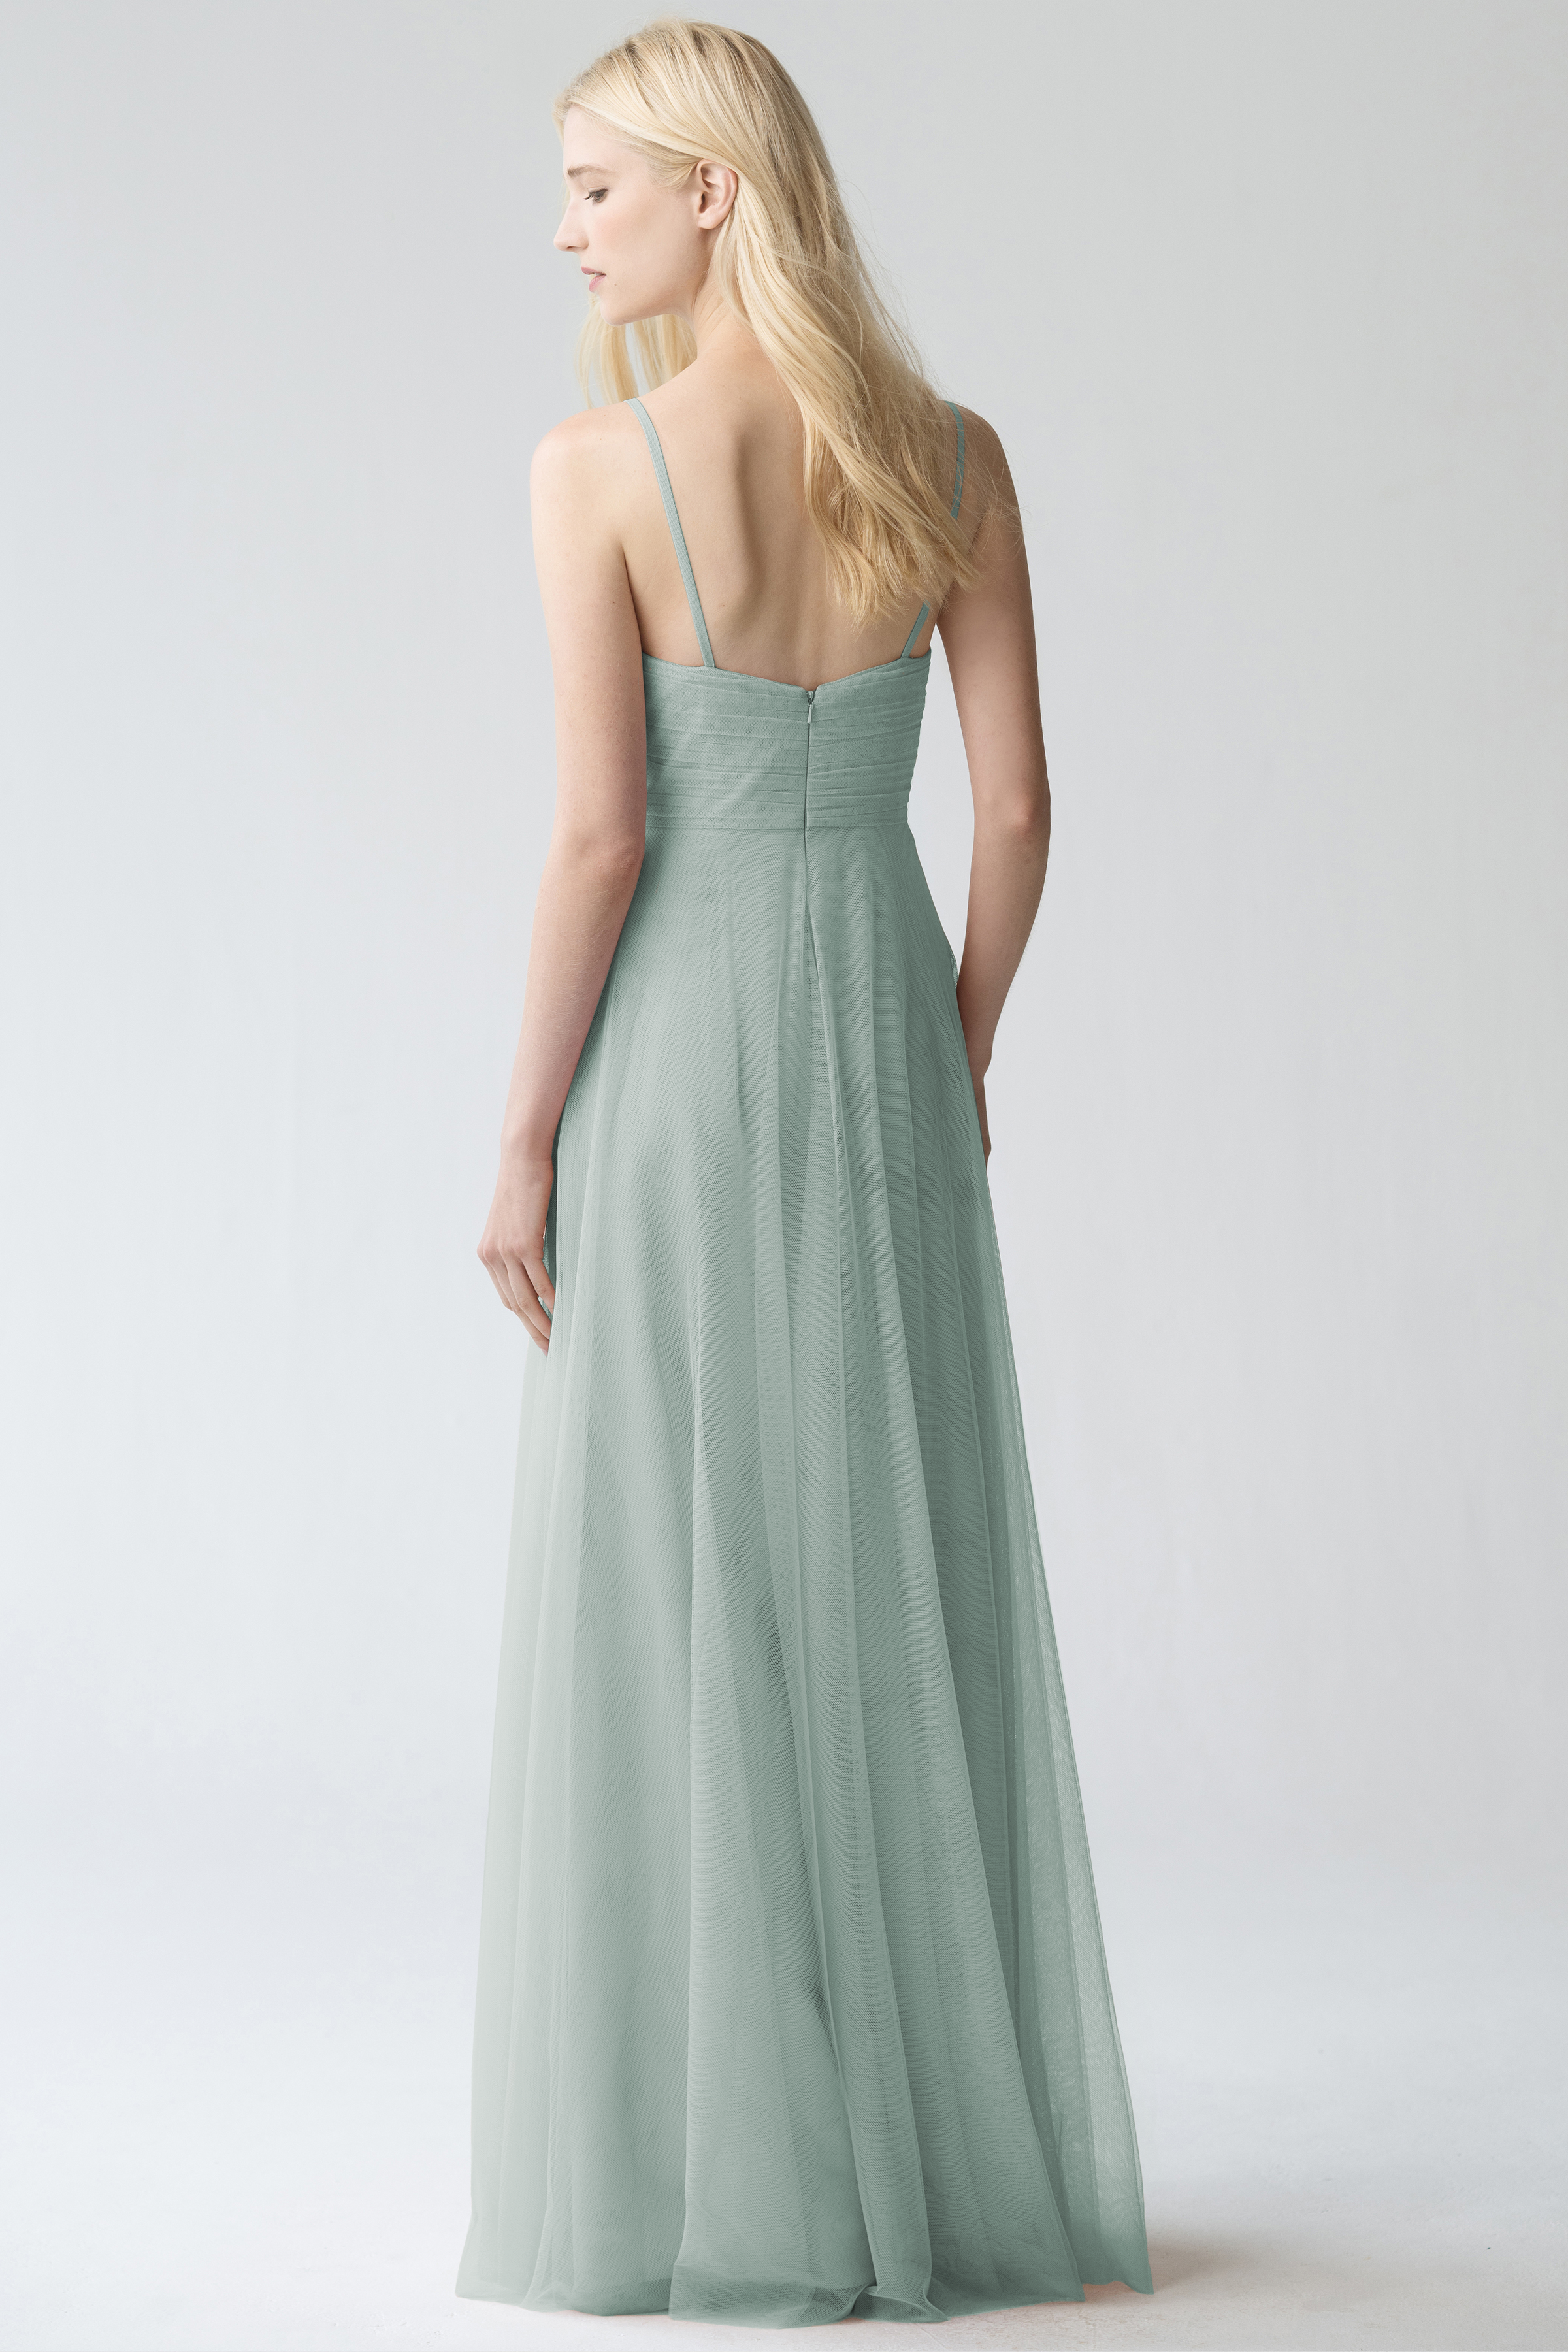 Brielle Applique Bridesmaids Dress by Jenny Yoo Morning Mist